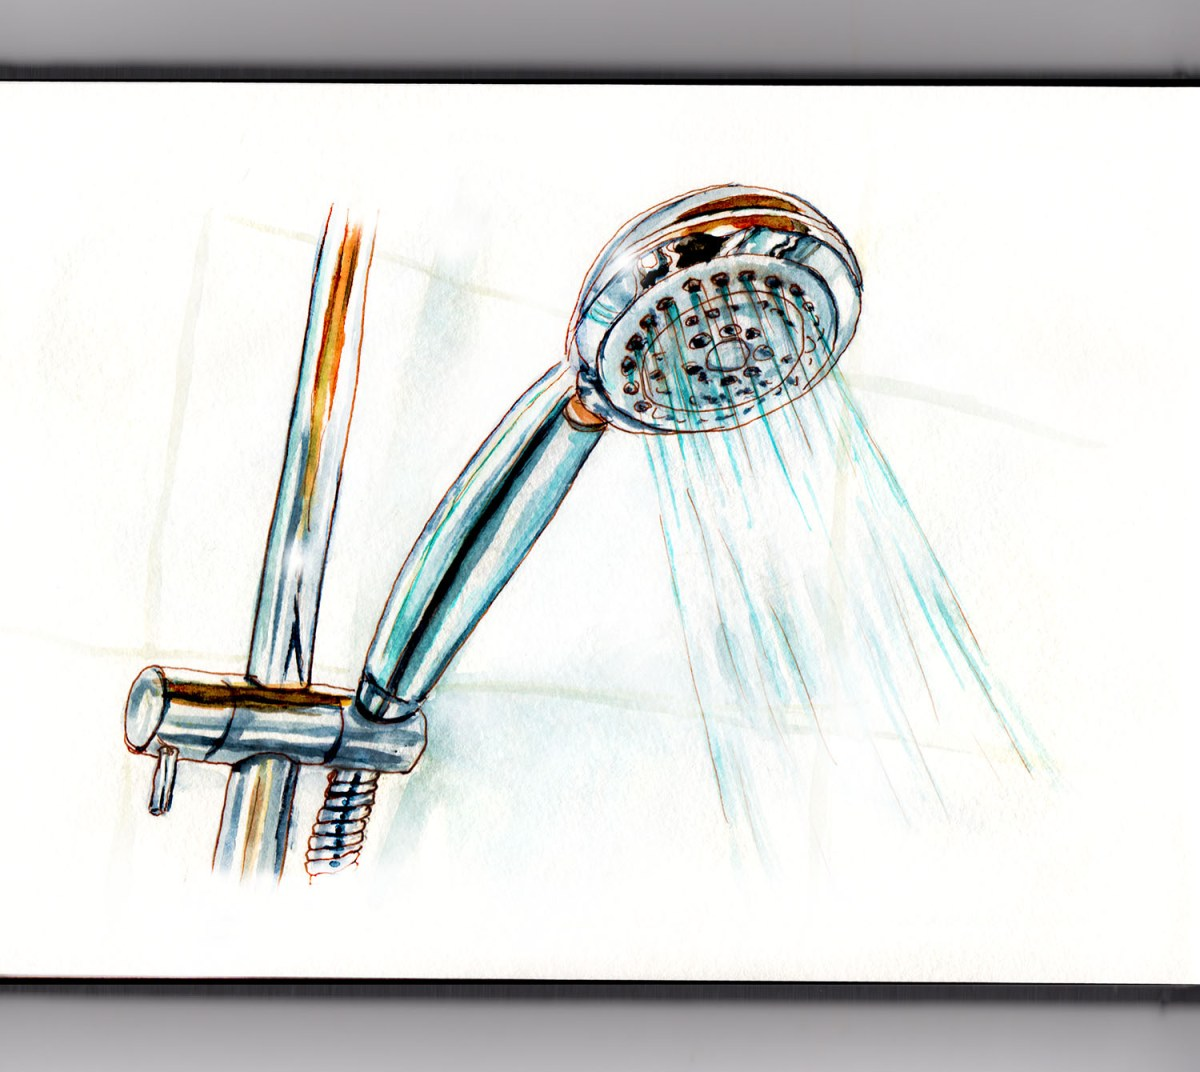 #WorldWatercolorGroup - Day 9 - Singing In The Shower - Showerhead - Doodlewash